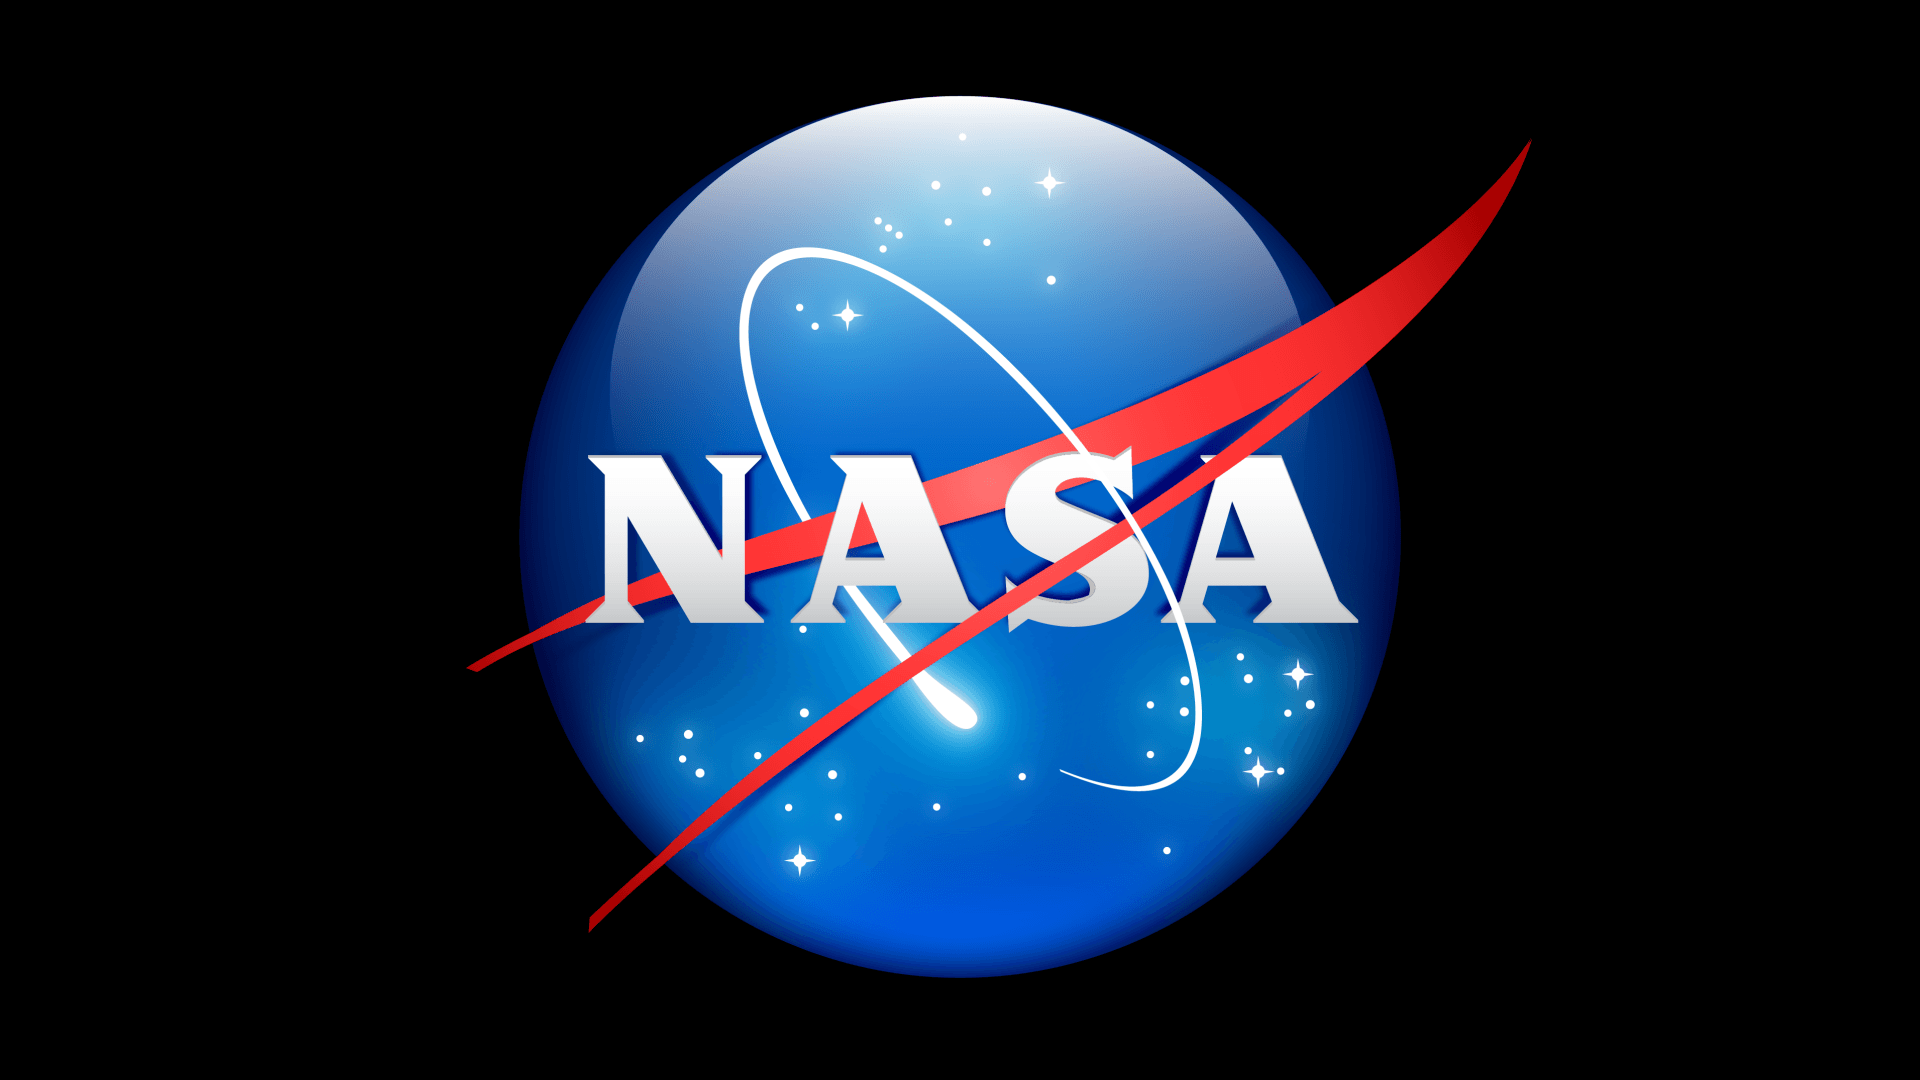 nasa logo hd wallpaper 63435